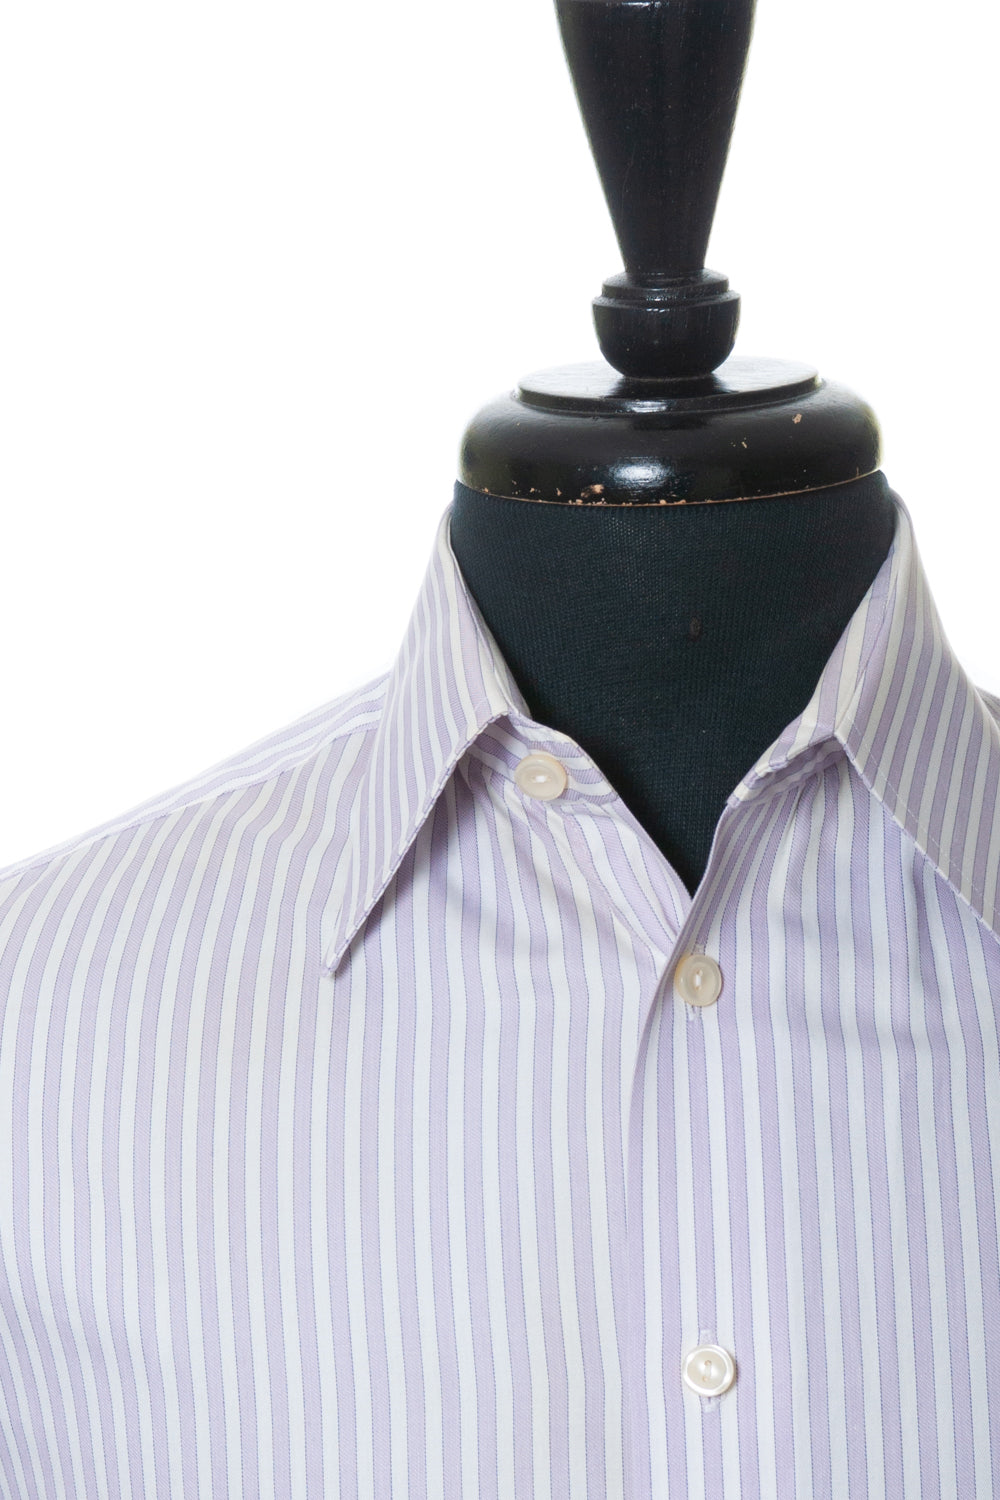 Eton Lilac Striped French Cuffed Shirt for Luxmrkt.com Menswear Consignment Edmonton